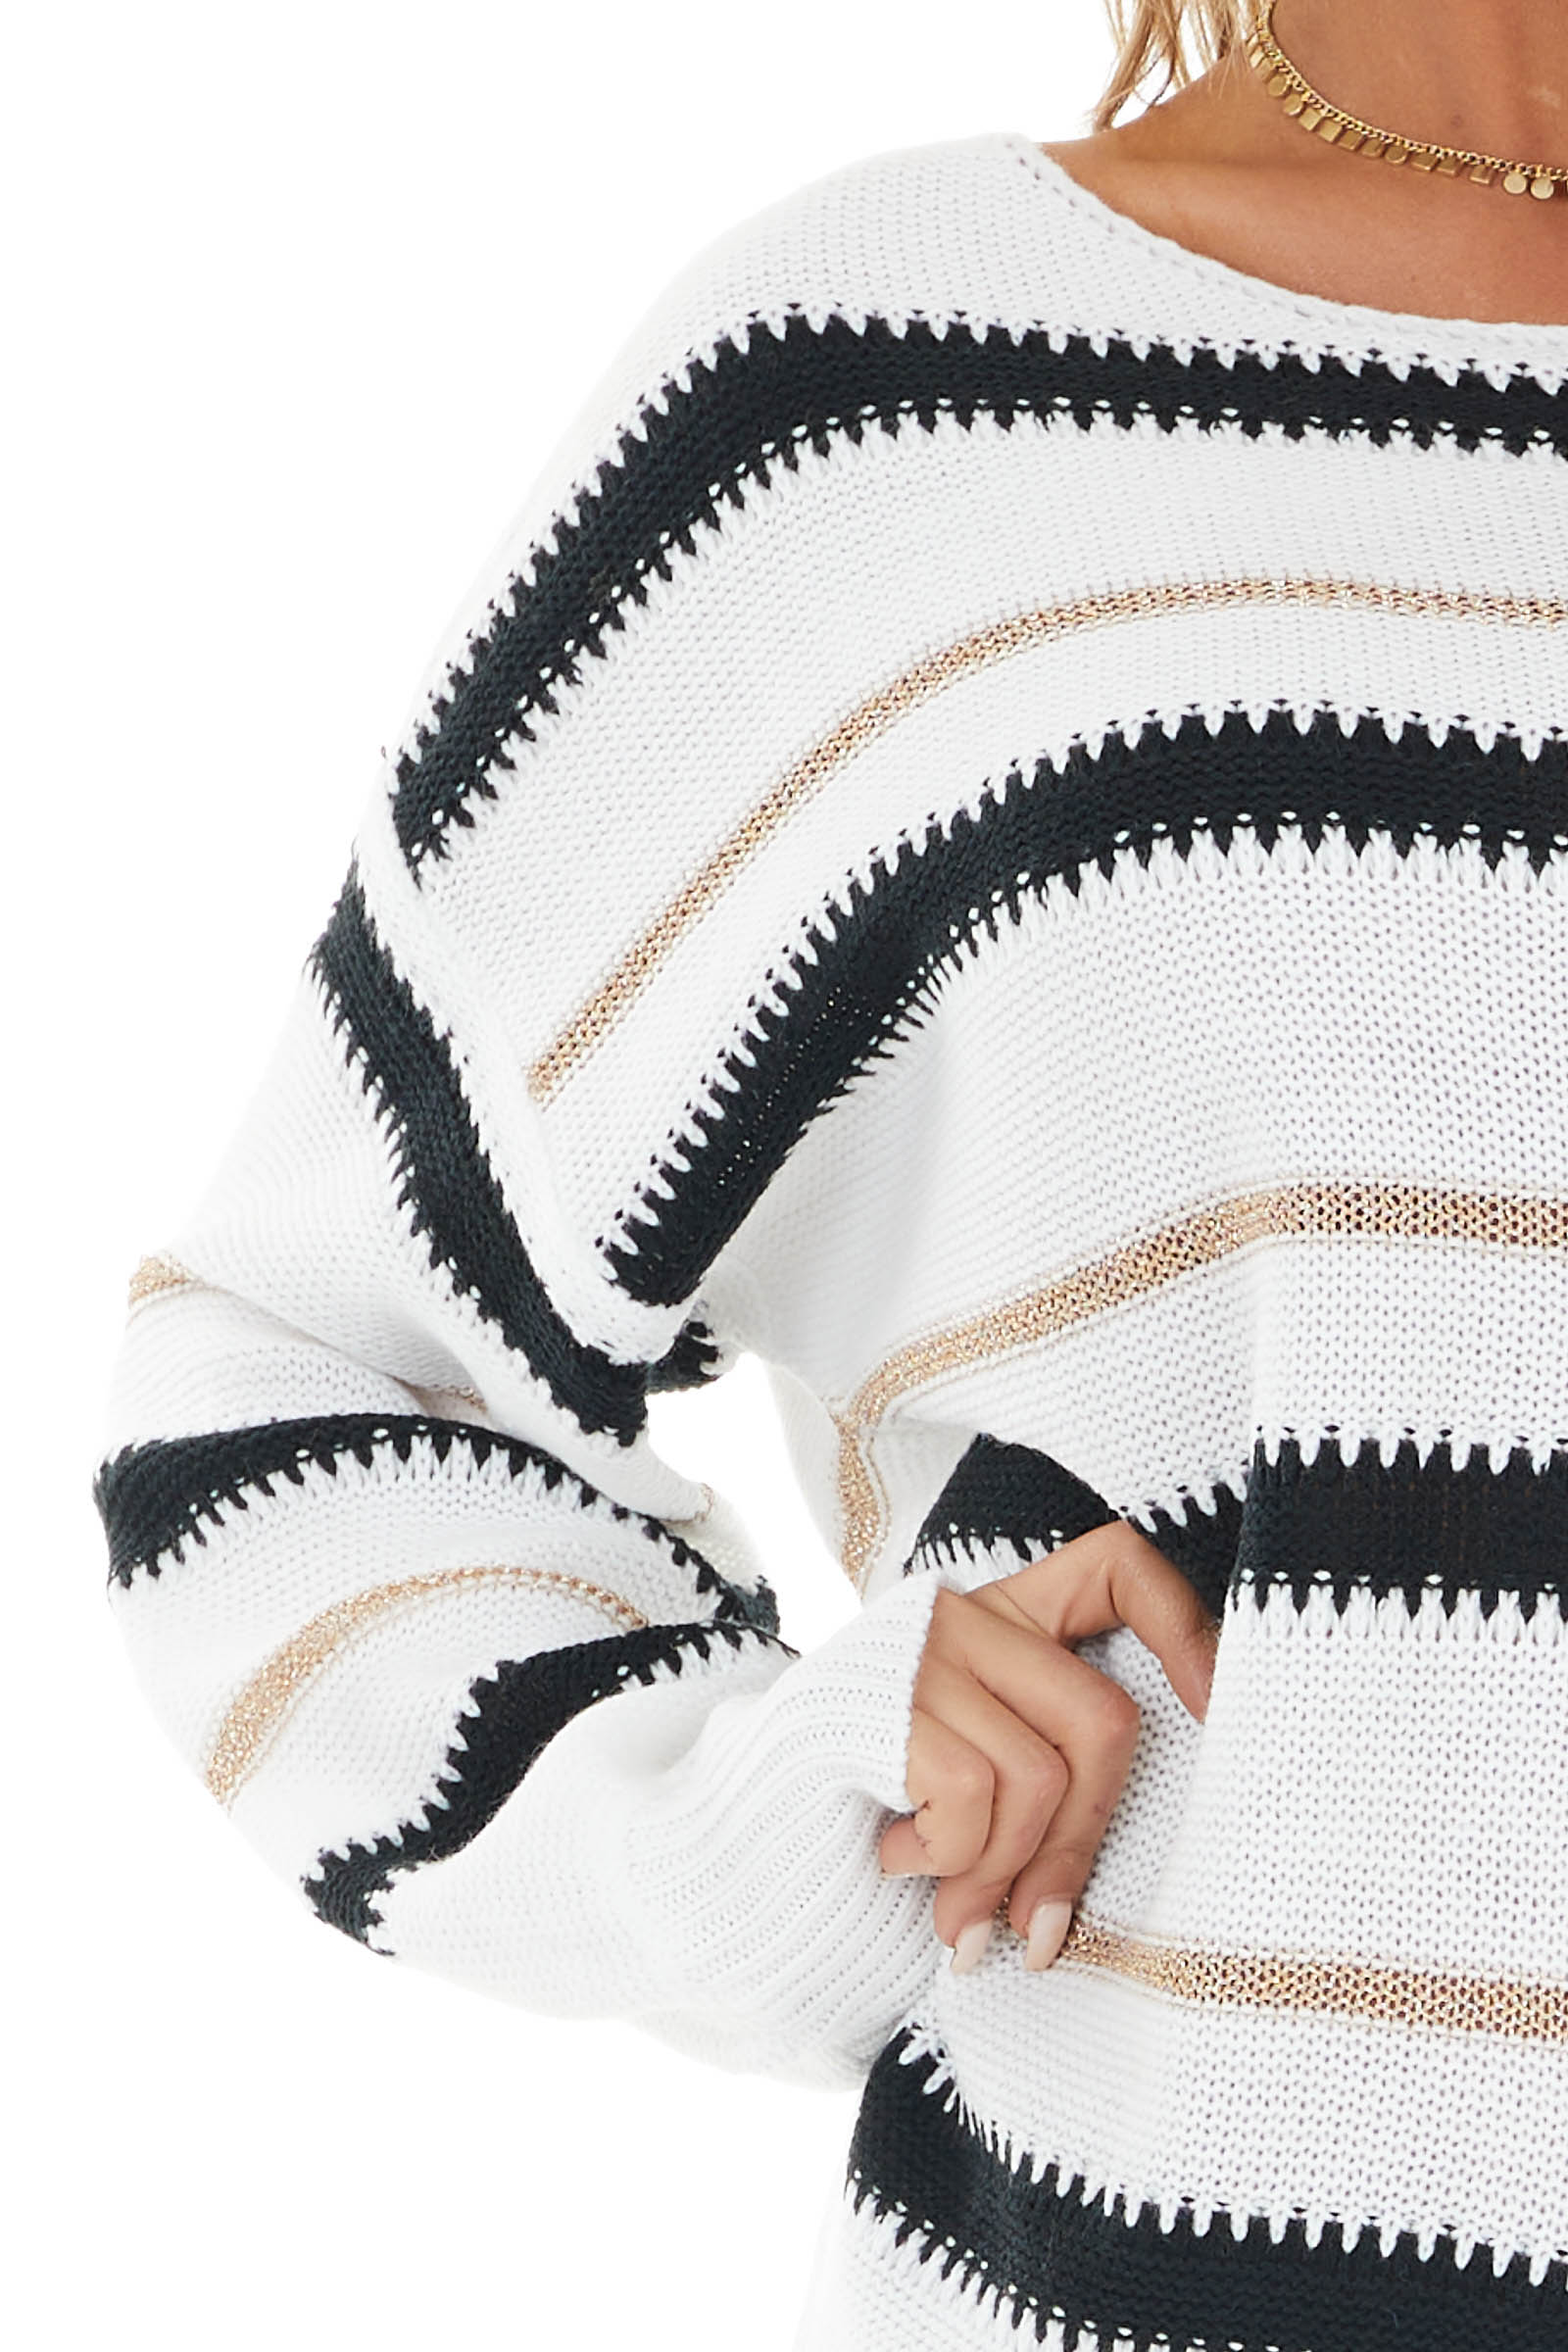 White Stripe Print Knit Sweater with Black and Gold